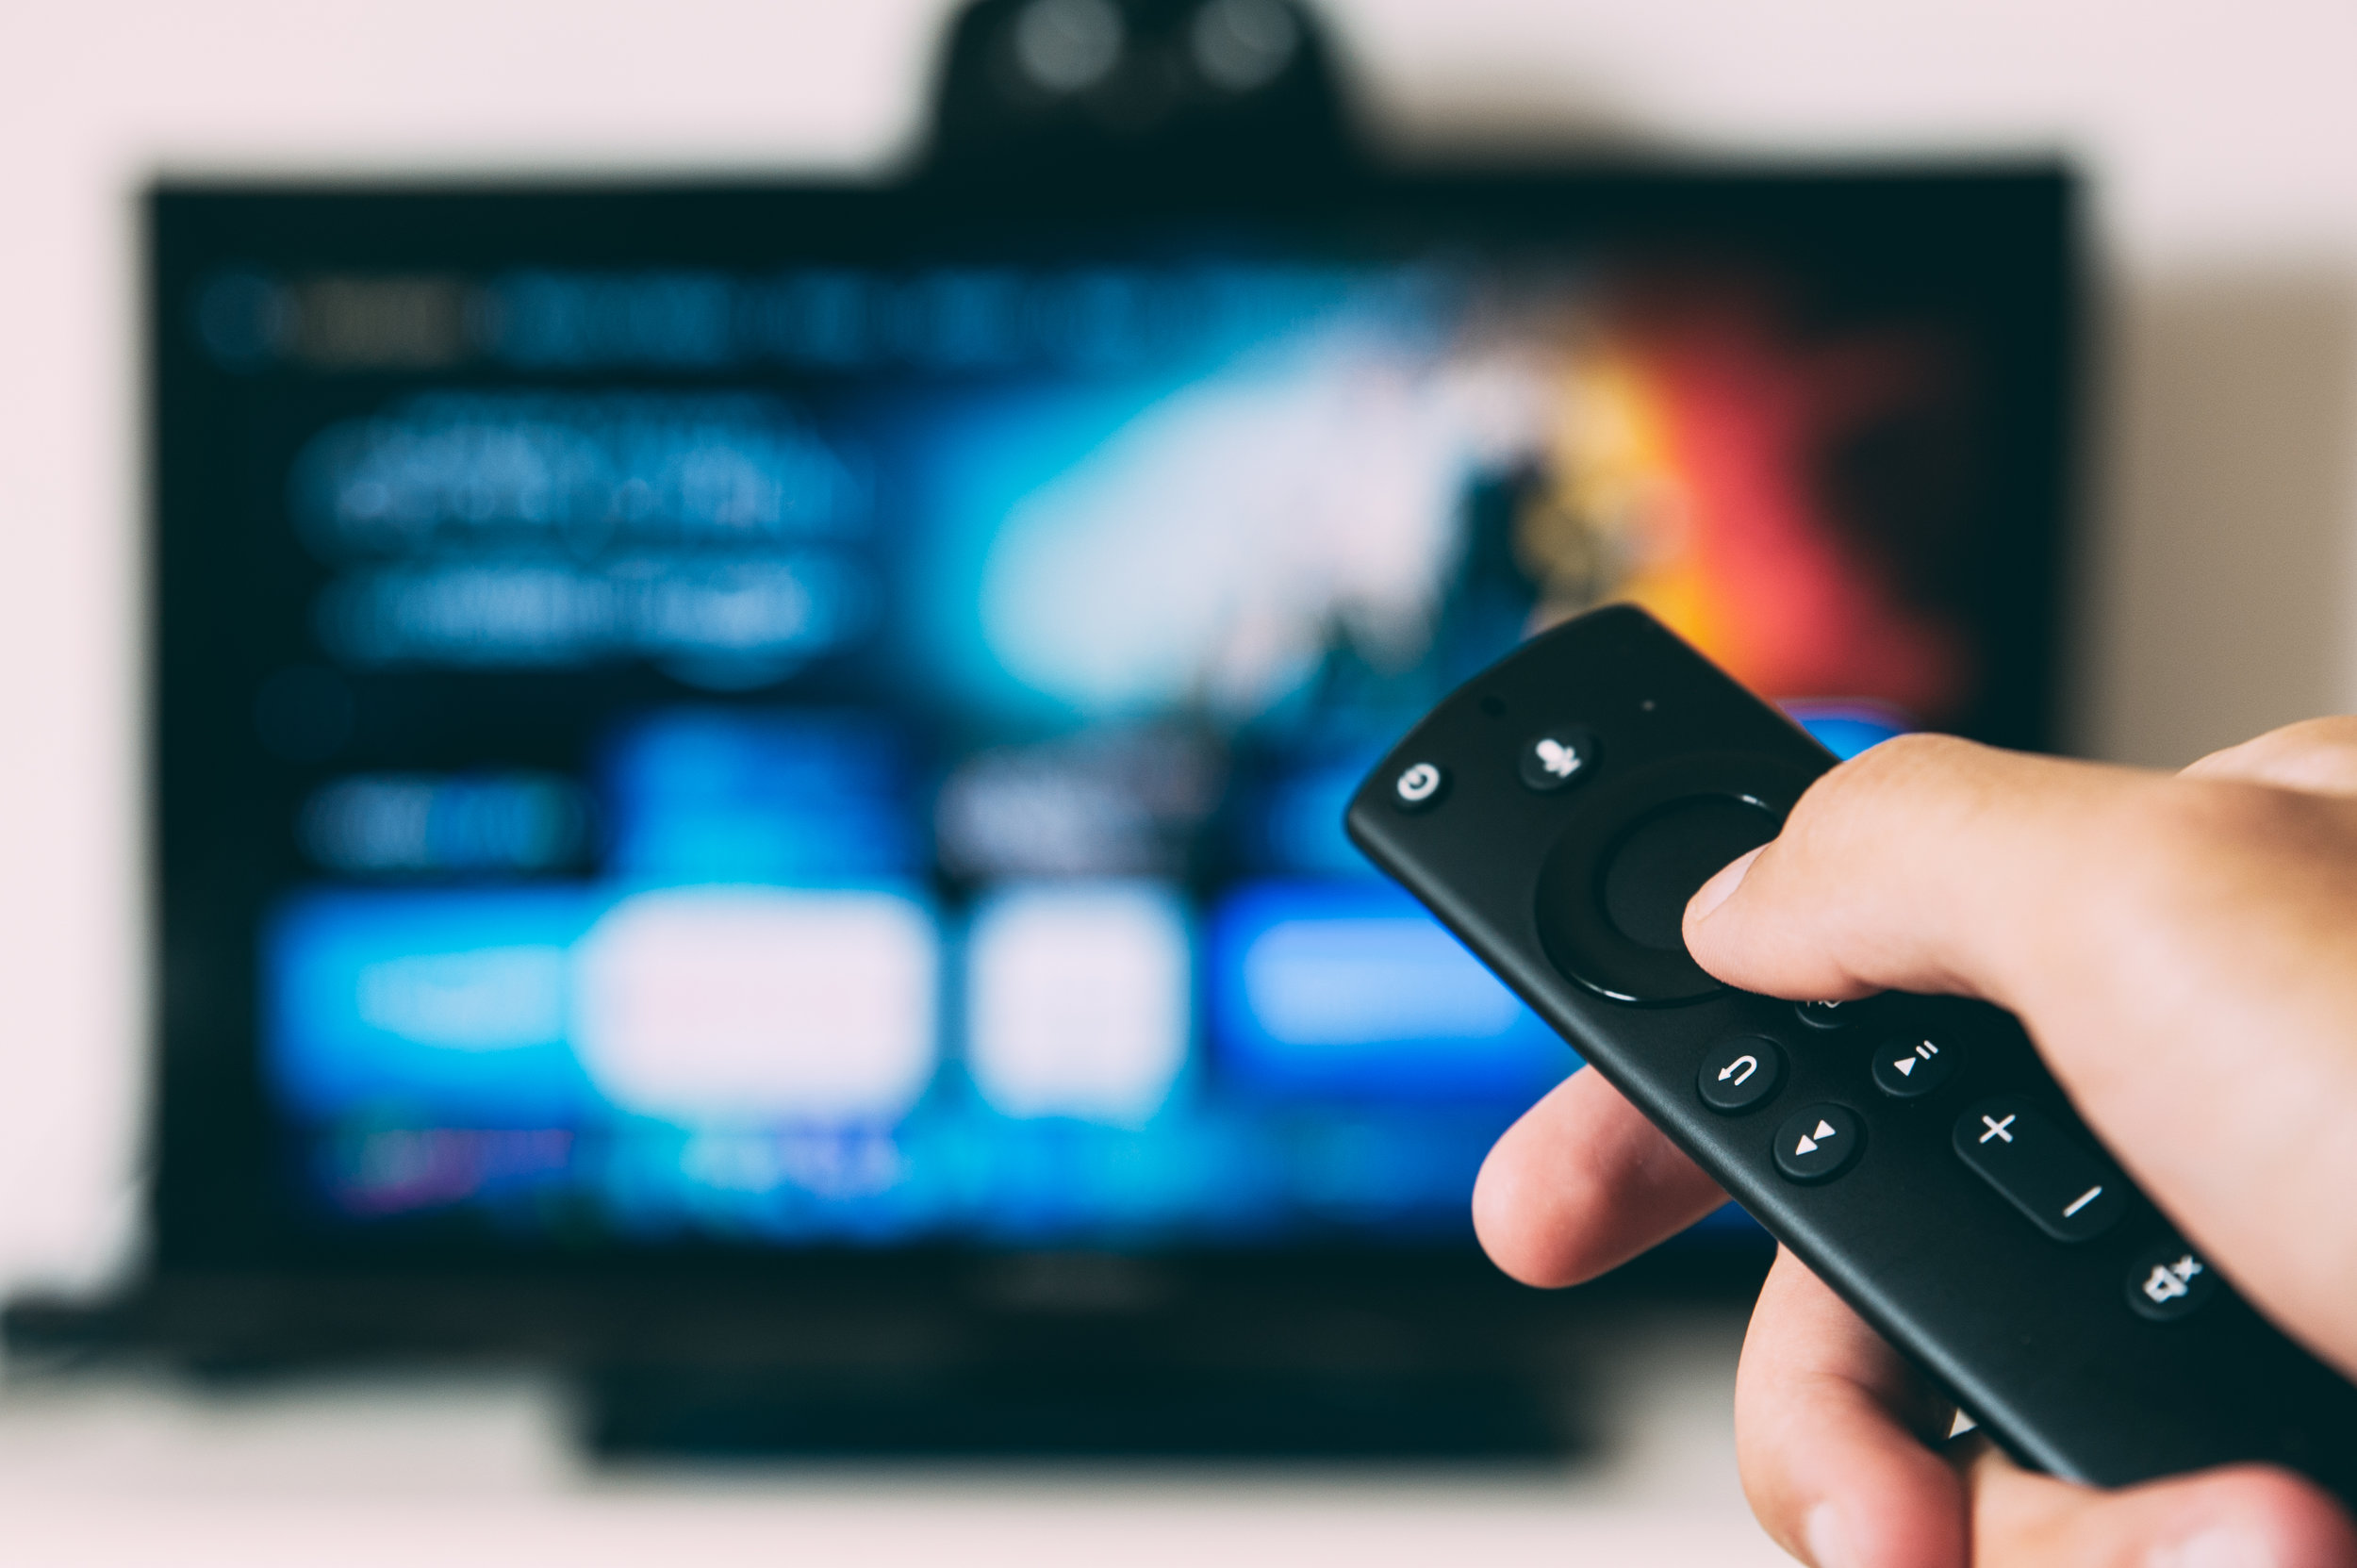 Bringing an Over-the-Top Streaming Business to Life